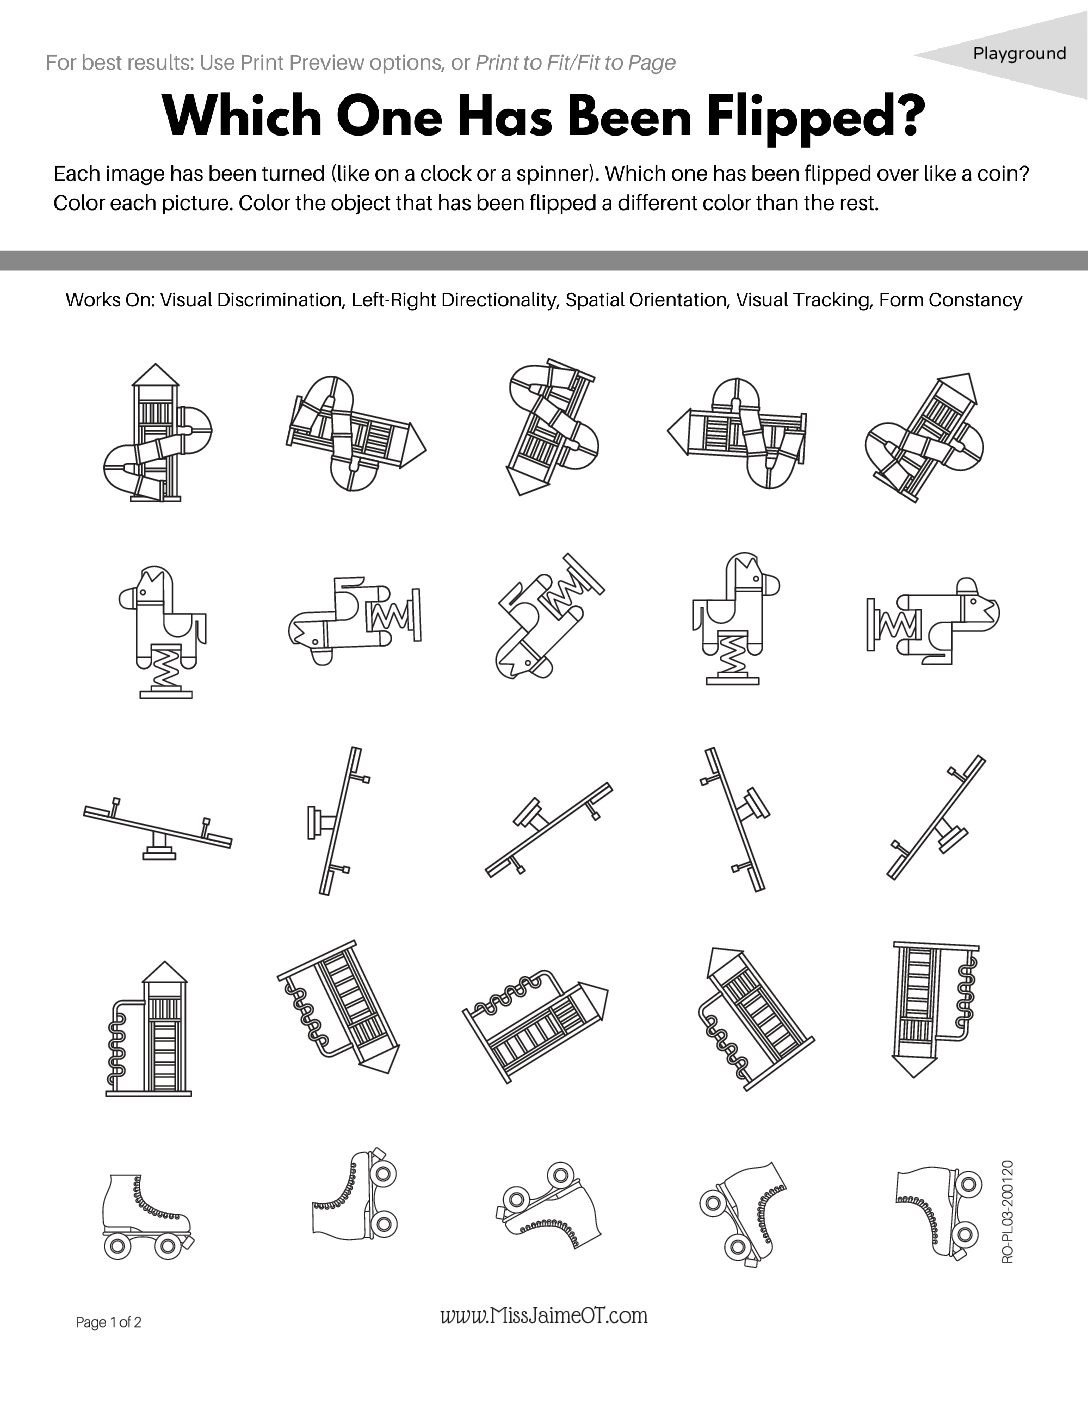 Playground Rotation RO PL03 pdf